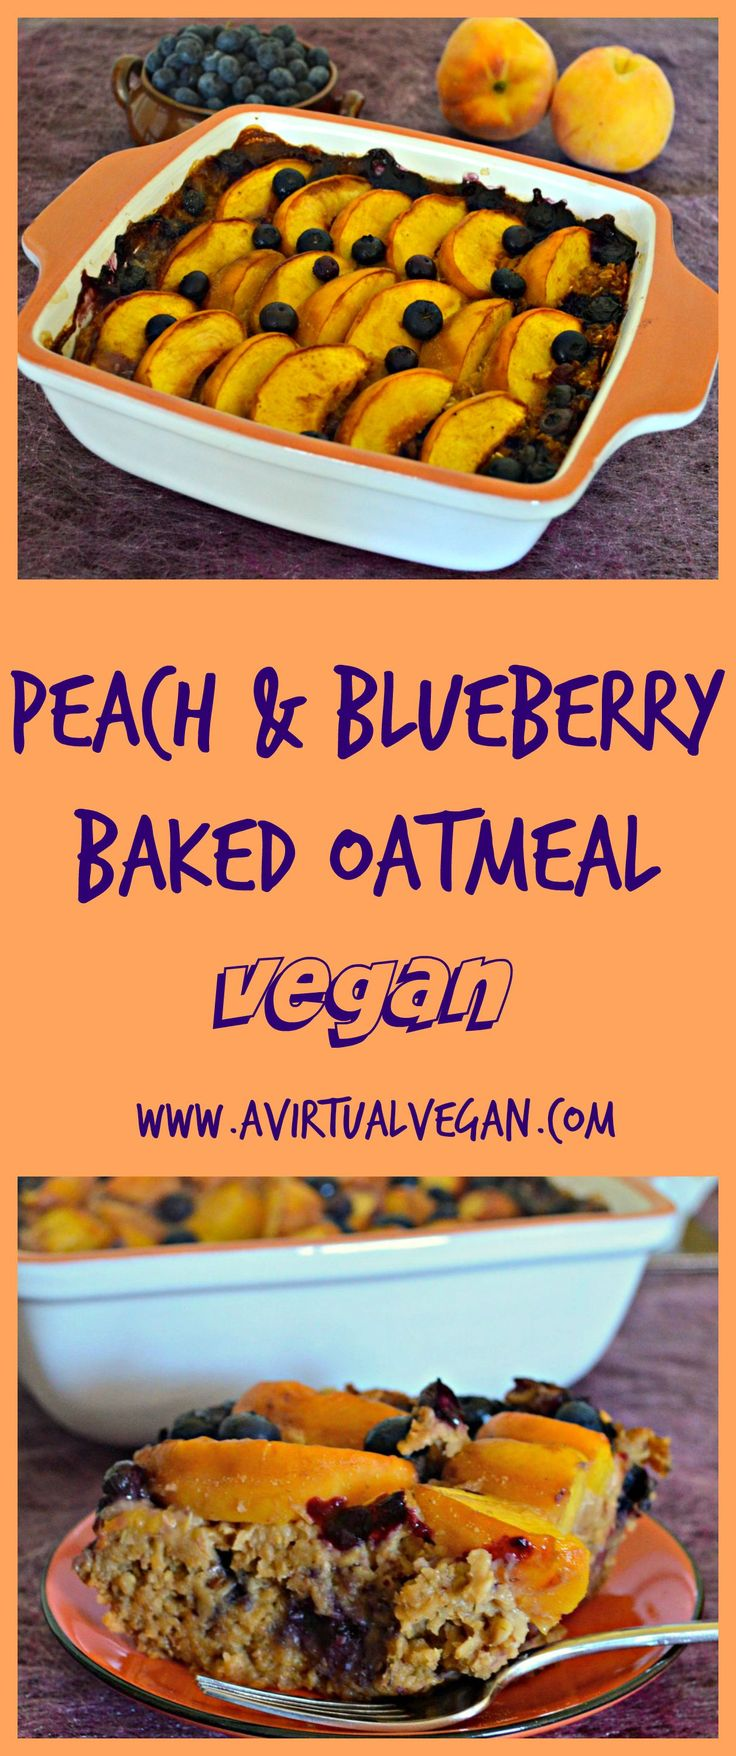 Sweet, juicy peaches and blueberries come together beautifully in this Peach Baked Oatmeal with Blueberries. A delicious & healthy breakfast.  #bakedoatmeal #breakfast #vegan via @avirtualvegan